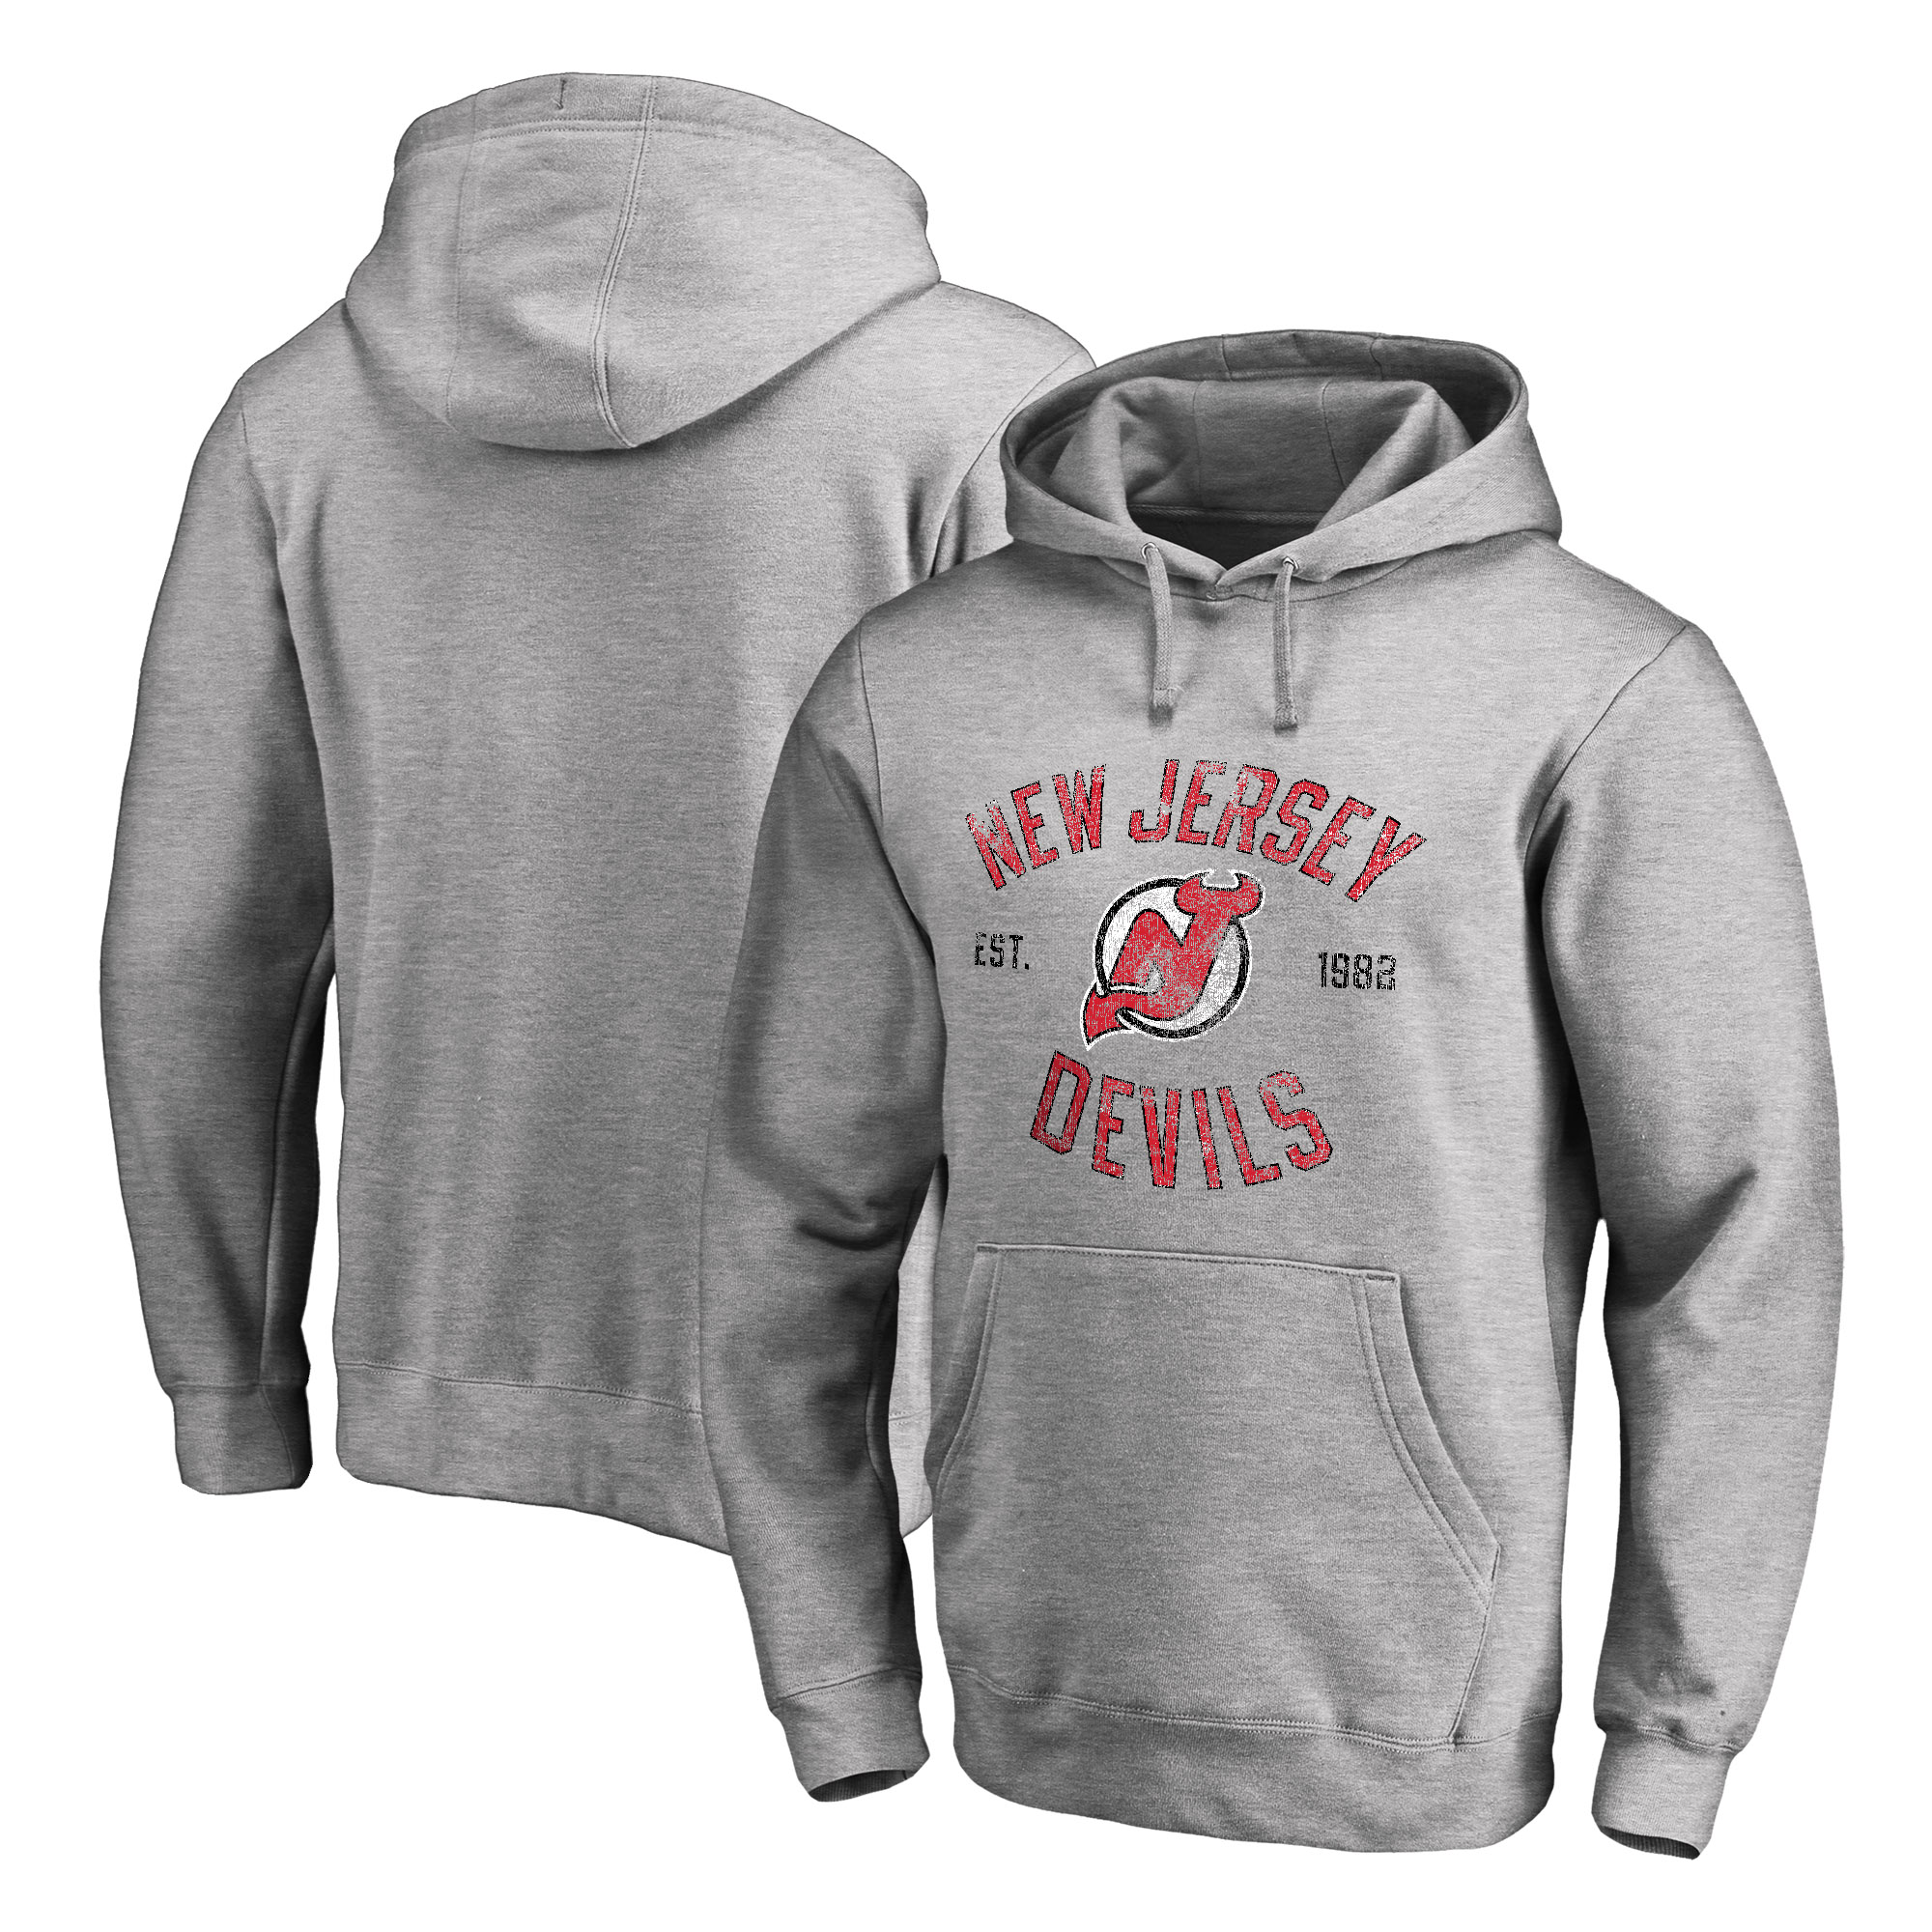 New Jersey Devils Heritage Pullover Hoodie - Ash